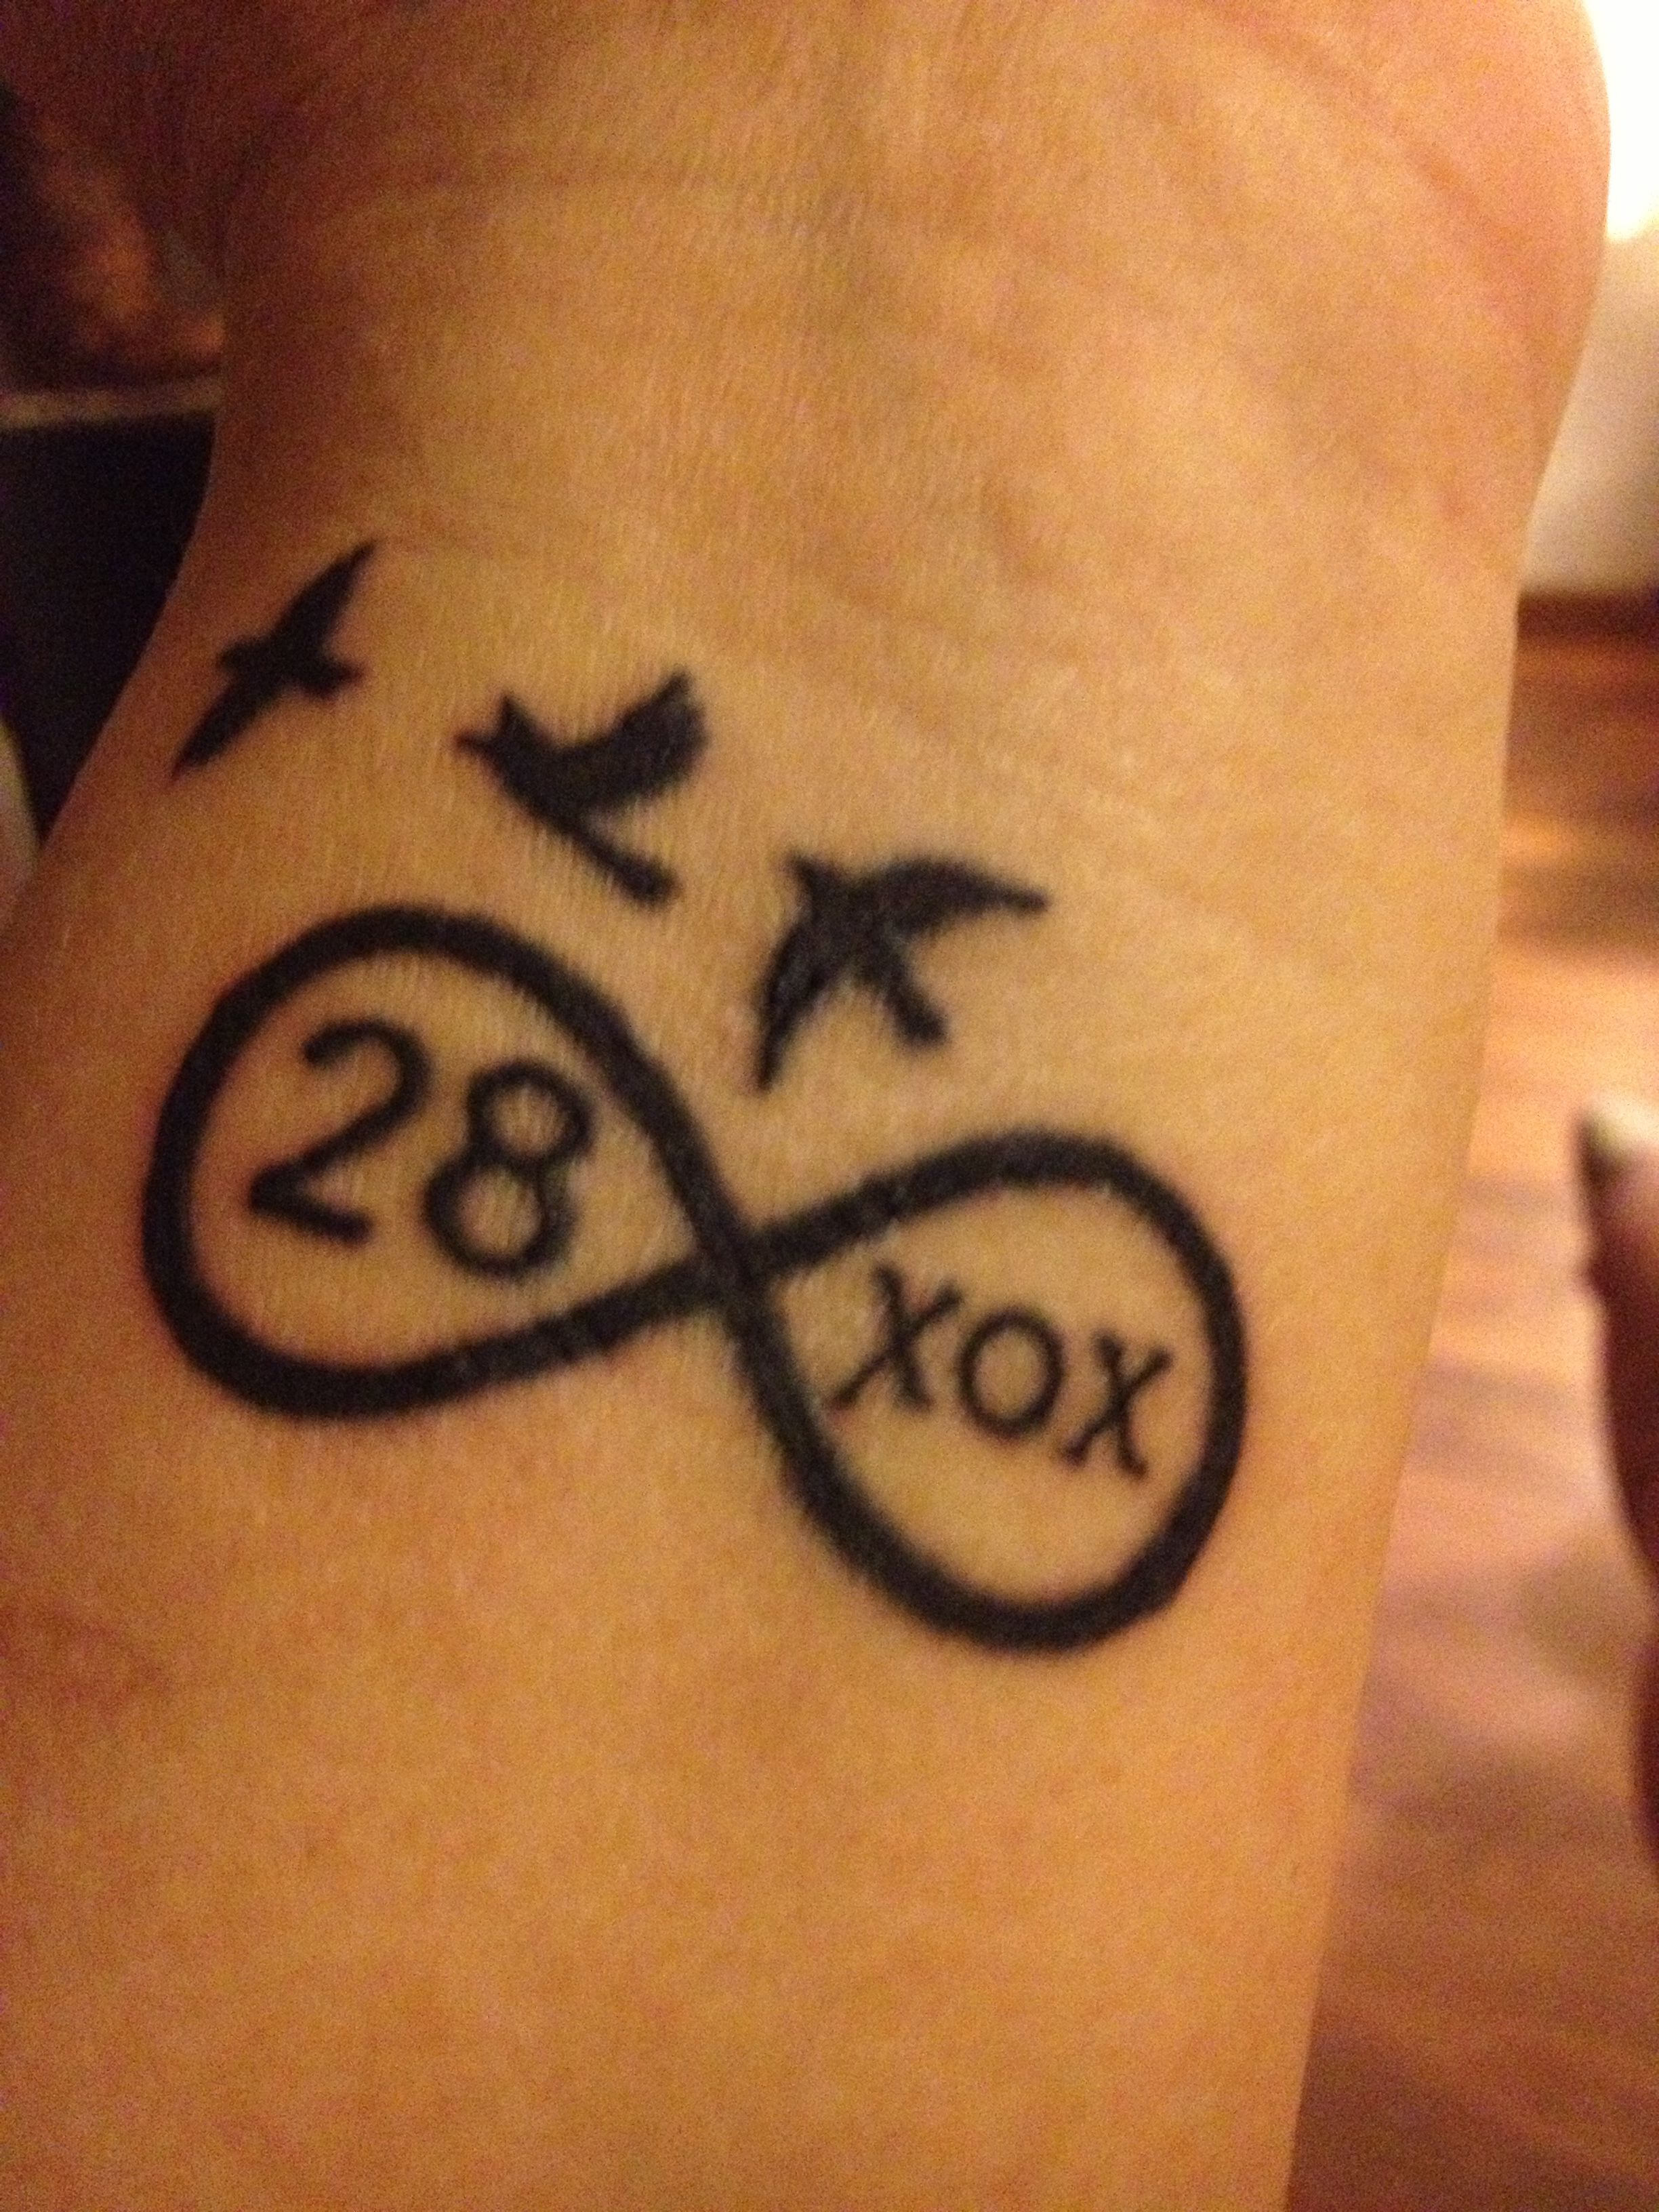 For my #28 with me forever!!! My freebird...